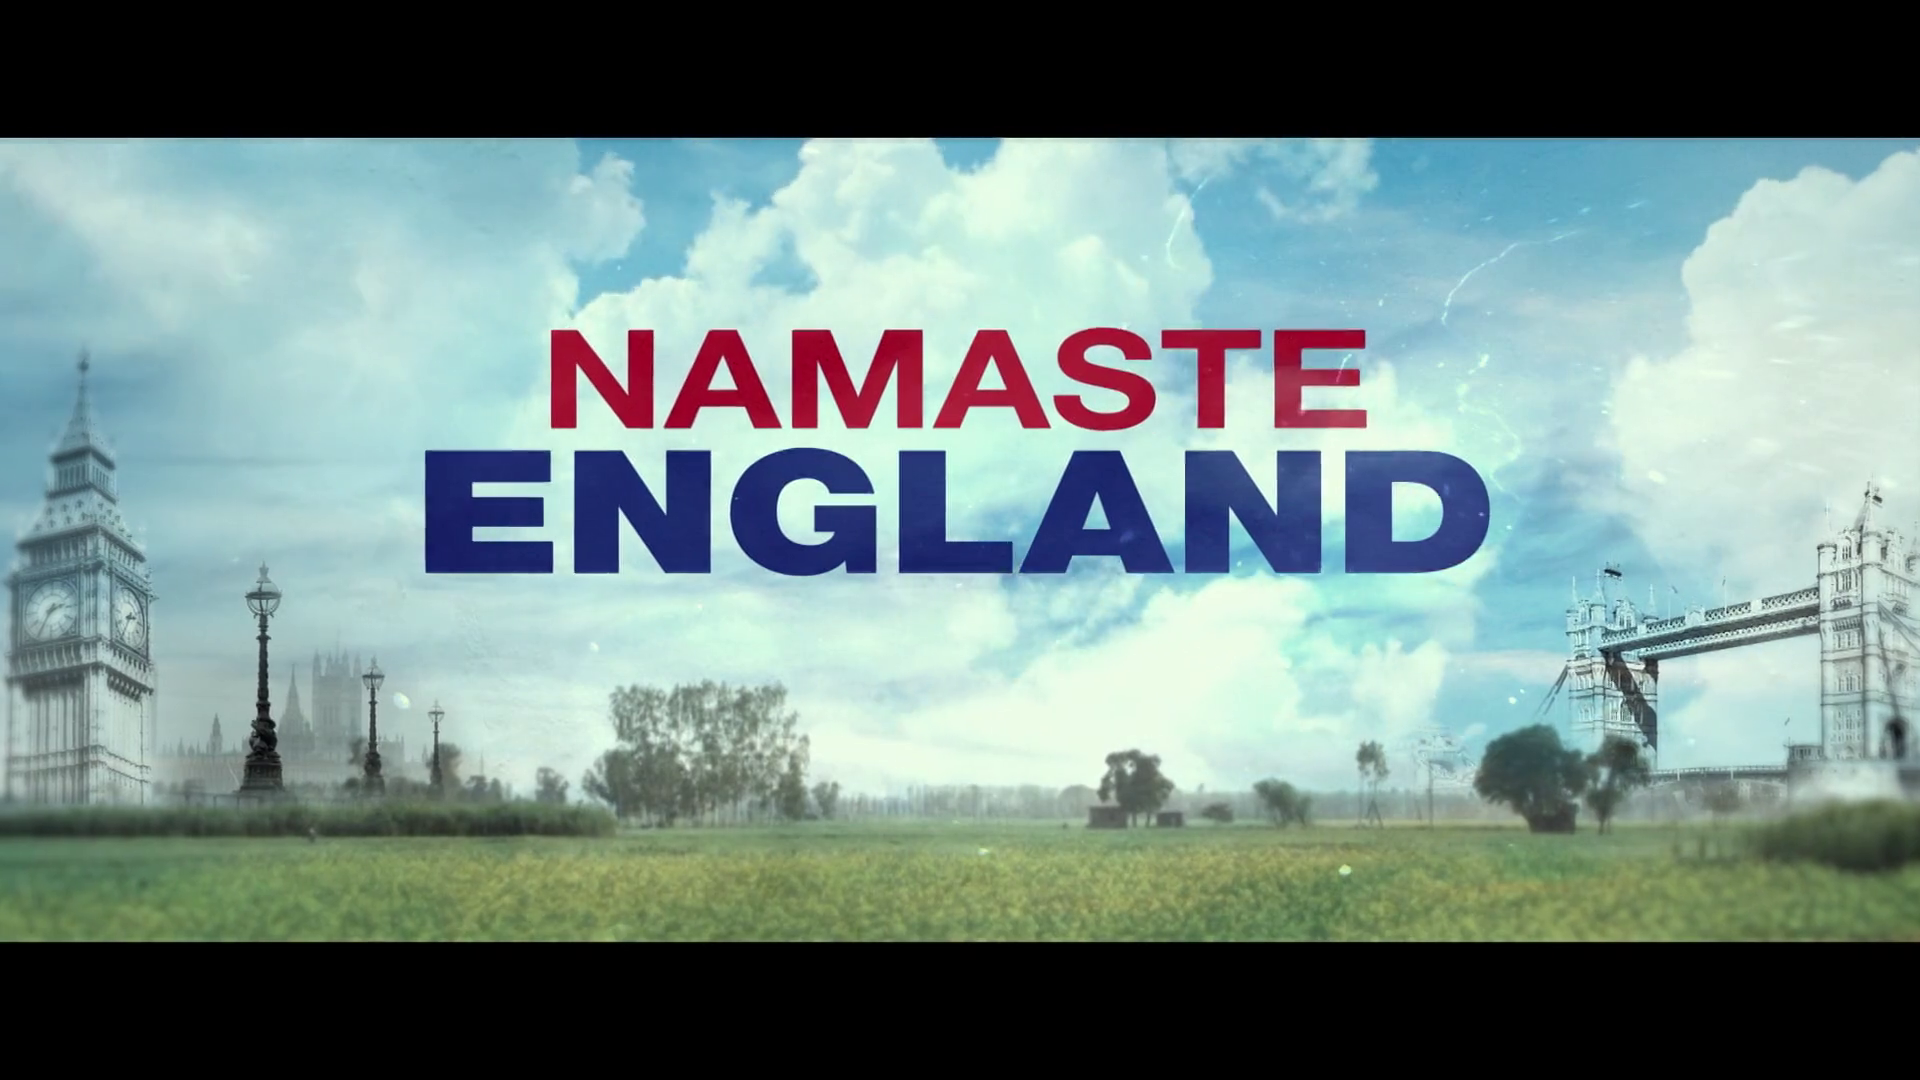 Namaste England (2018) 1080p - UntoucheD WEB DL - AVC - AAC-Team IcTv Exclusive